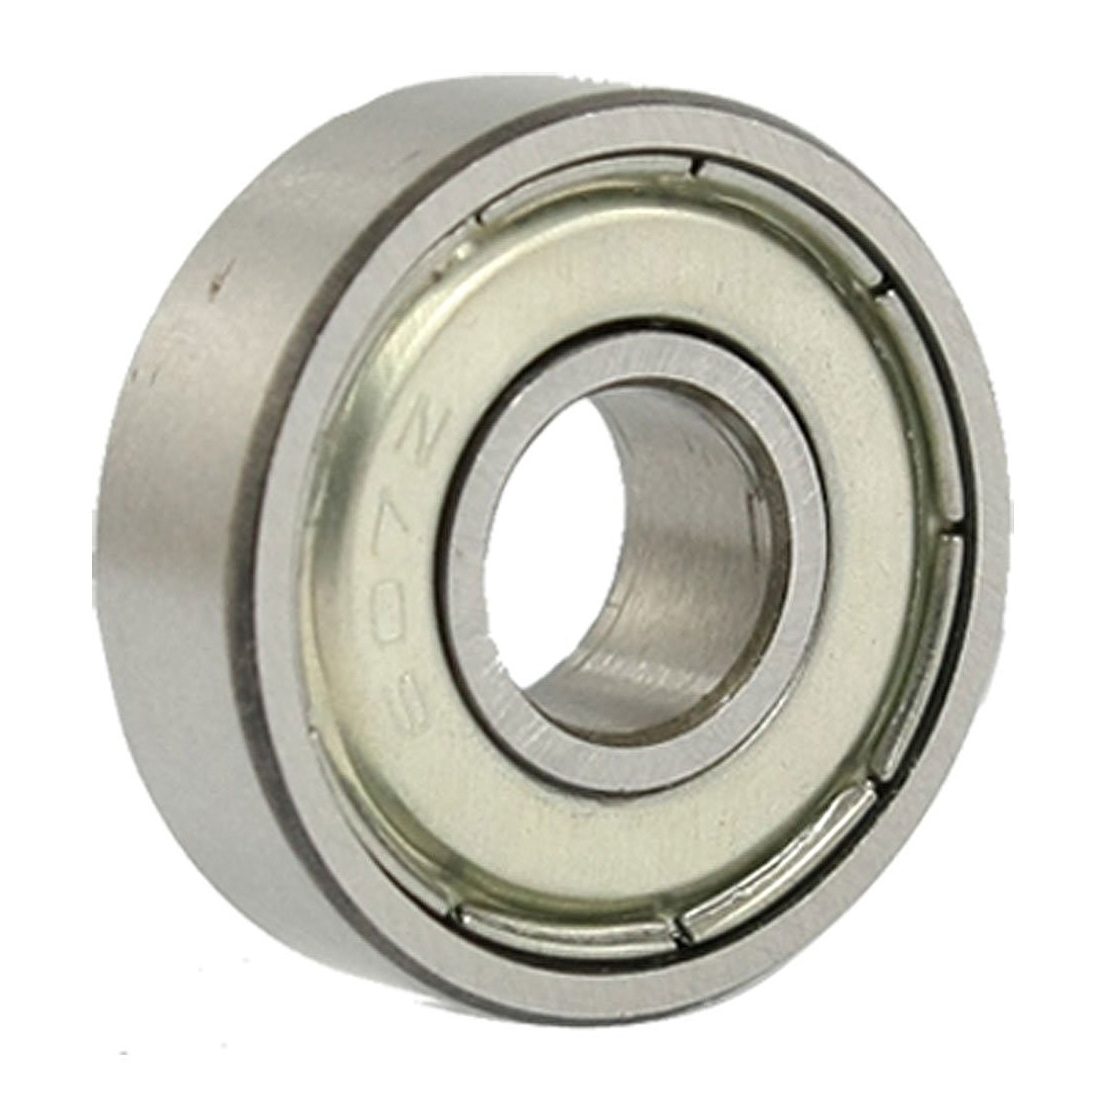 607Z 7 x 19 x 6mm Double Shielded Deep Groove Ball Bearings 5 Pcs 5 pcs double sealed 3 x 7 x 3mm deep groove ball bearings page 4